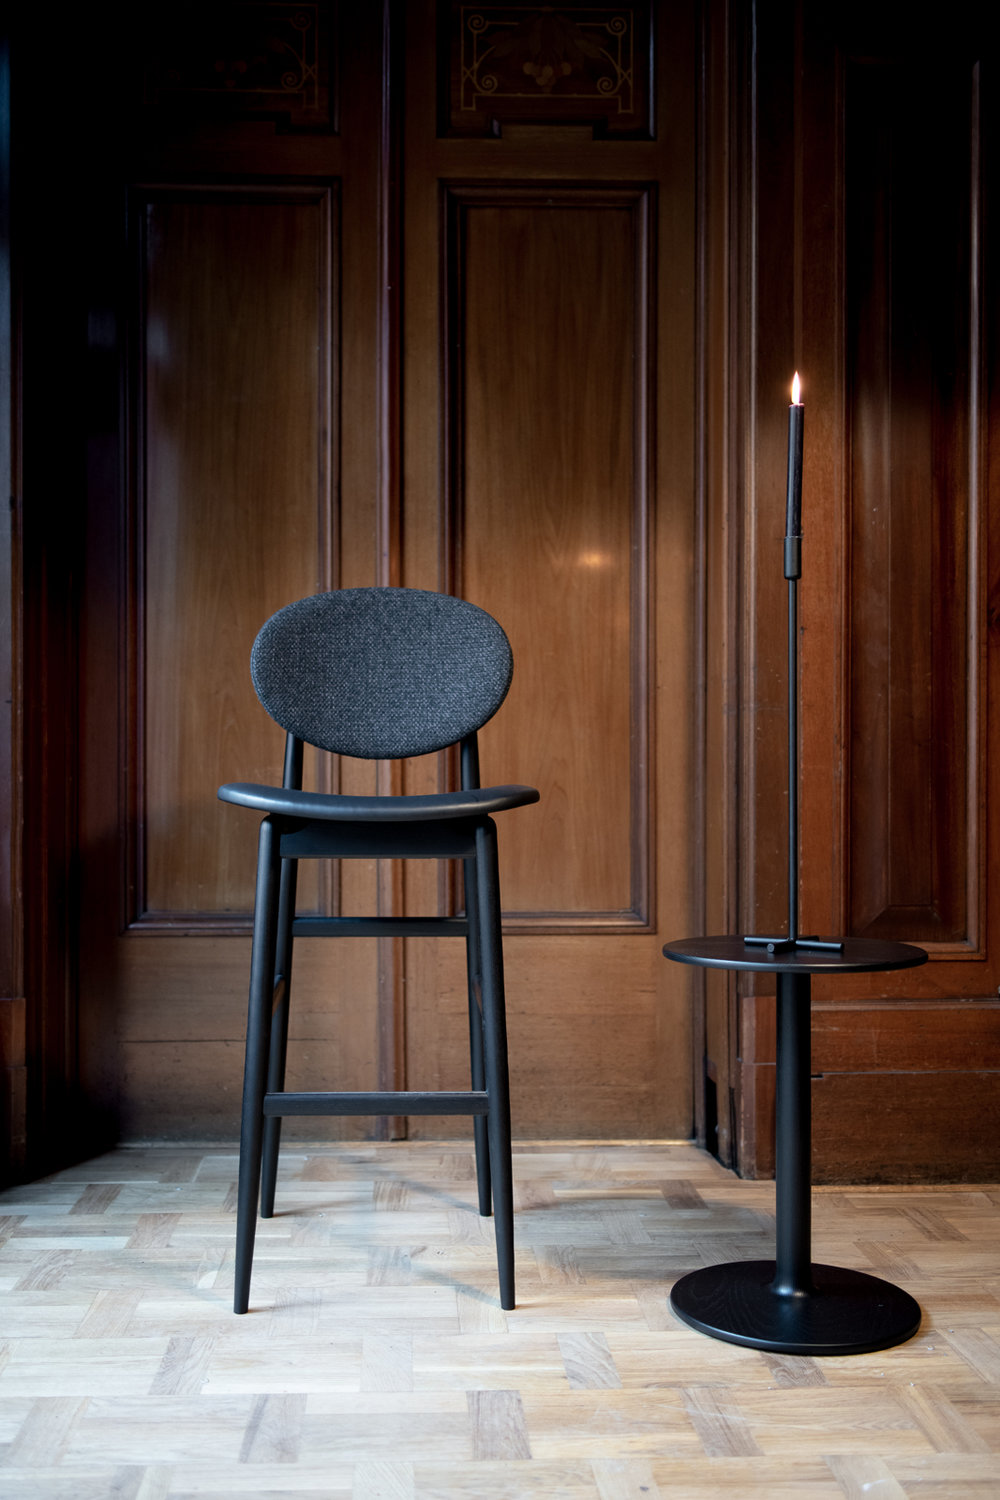 The 'Outline' chair by Norm Architects for Ariake now has a barstool variant (shown here with the 'Taio' side table by Anderssen & Voll). Photograph by Sebastian Stadler.